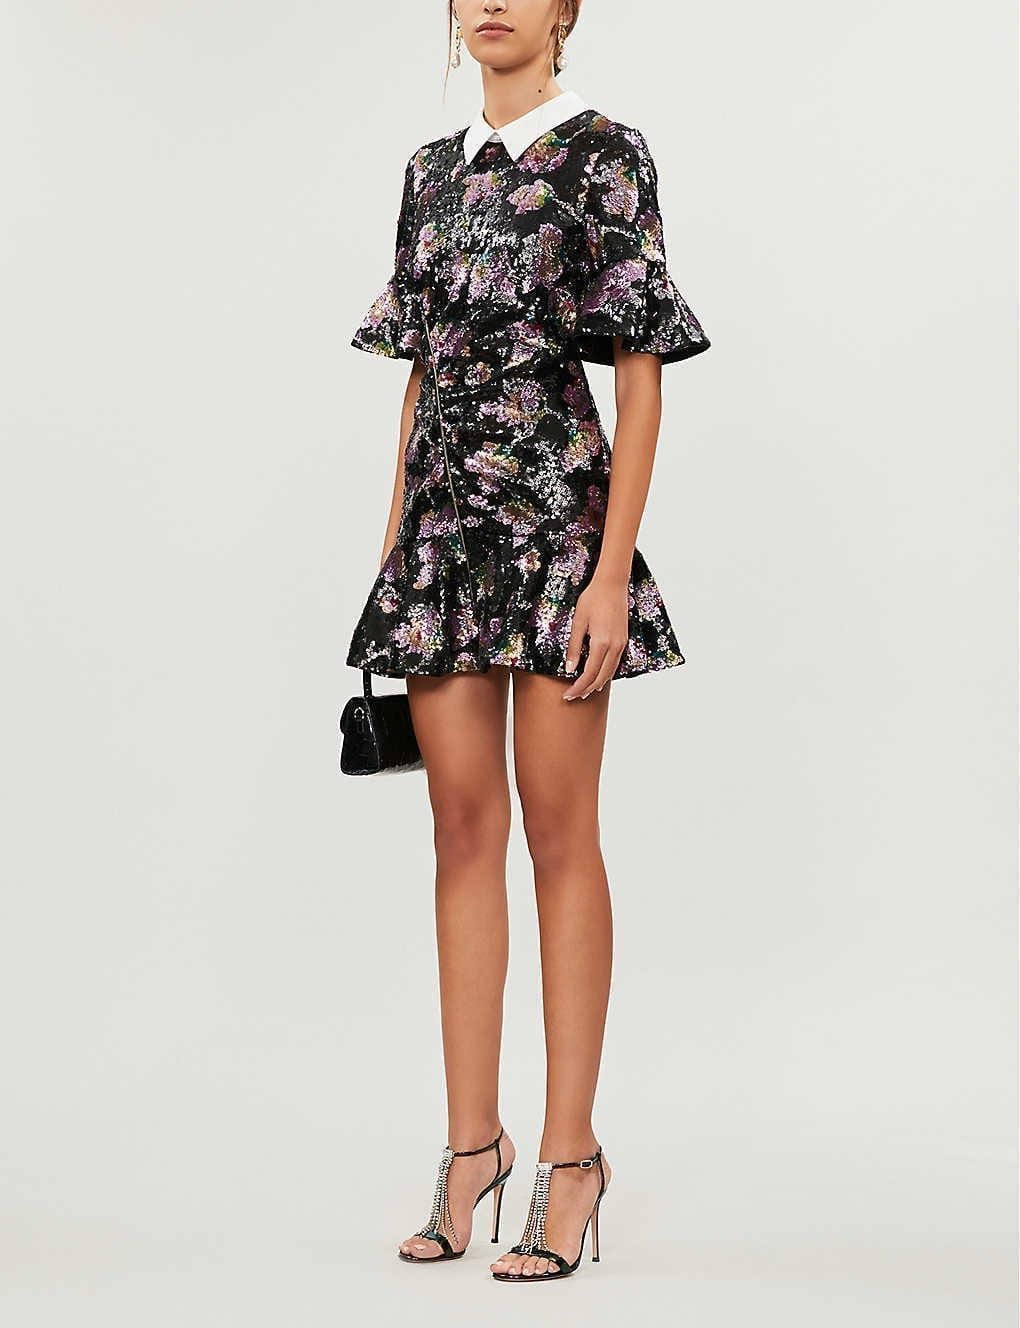 SELF-PORTRAIT Contrast-collar Floral-pattern Sequin Mini Dress